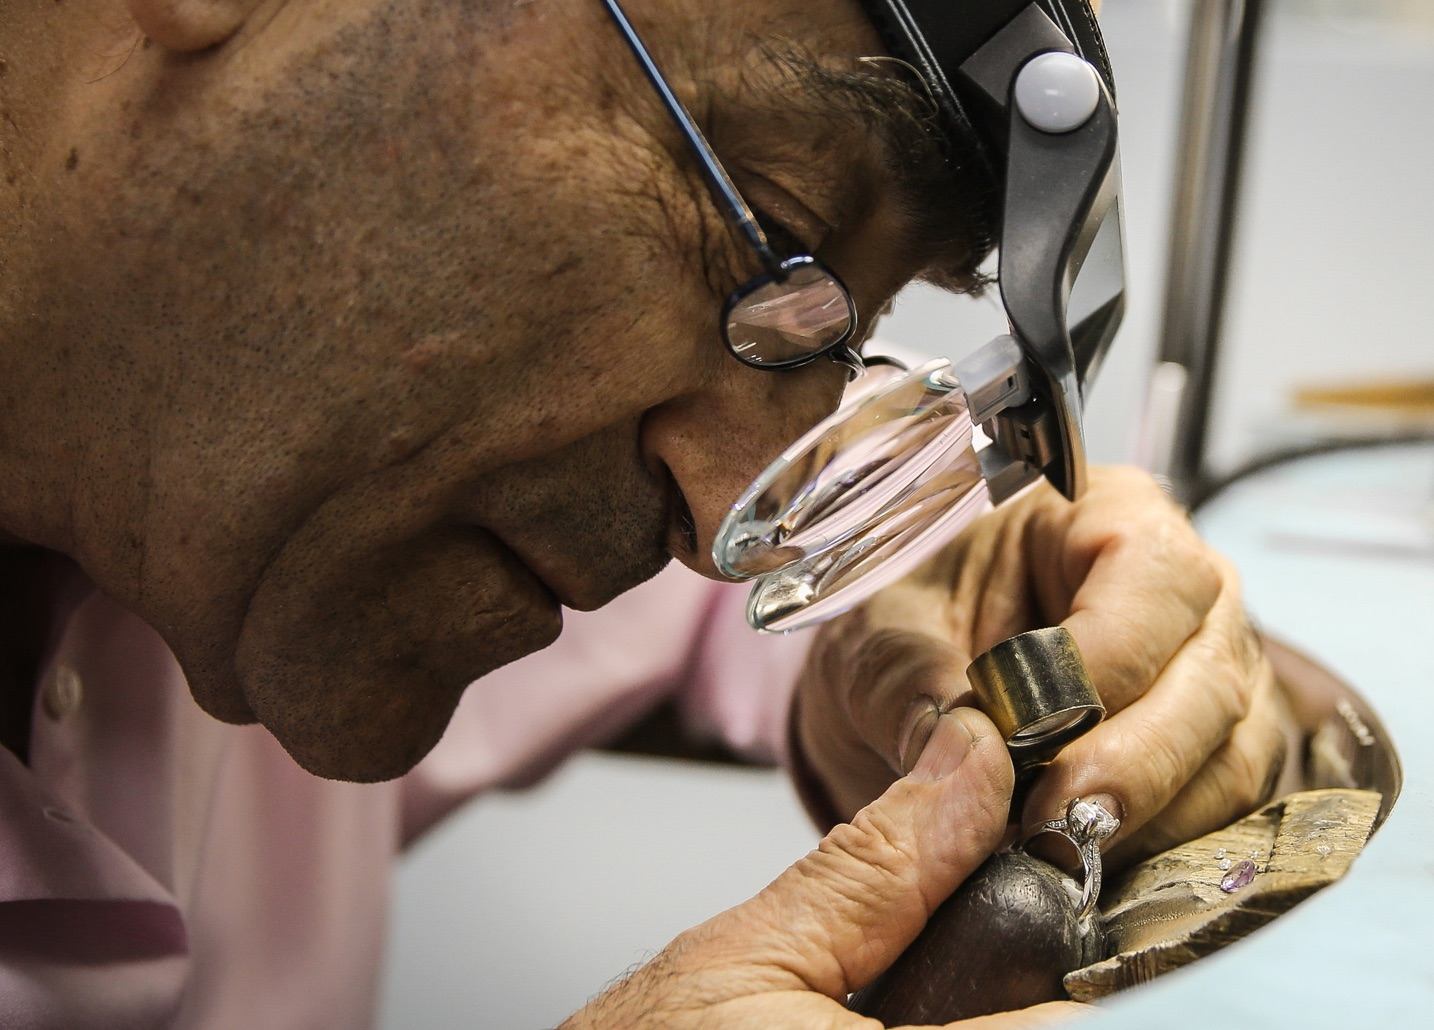 a jewelery craftsman vetting a diamond